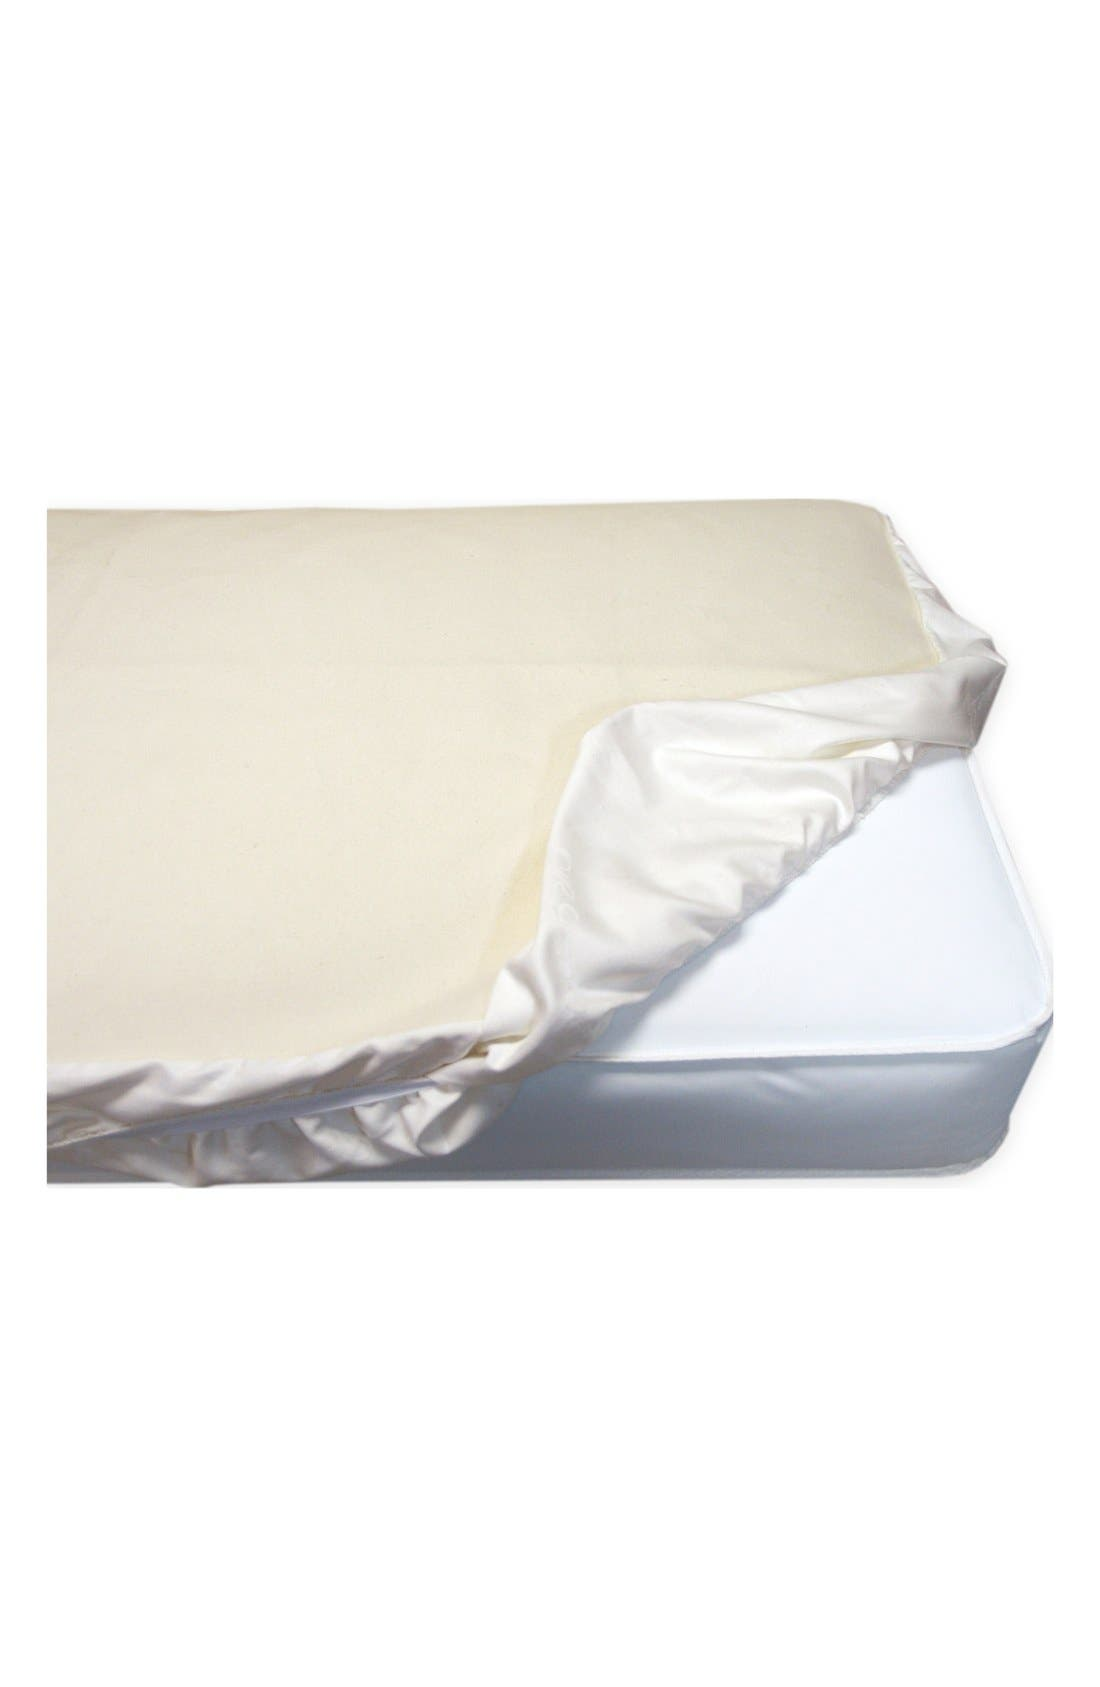 Alternate Image 1 Selected - Naturepedic Organic Cotton Waterproof Fitted Crib Protector Pad